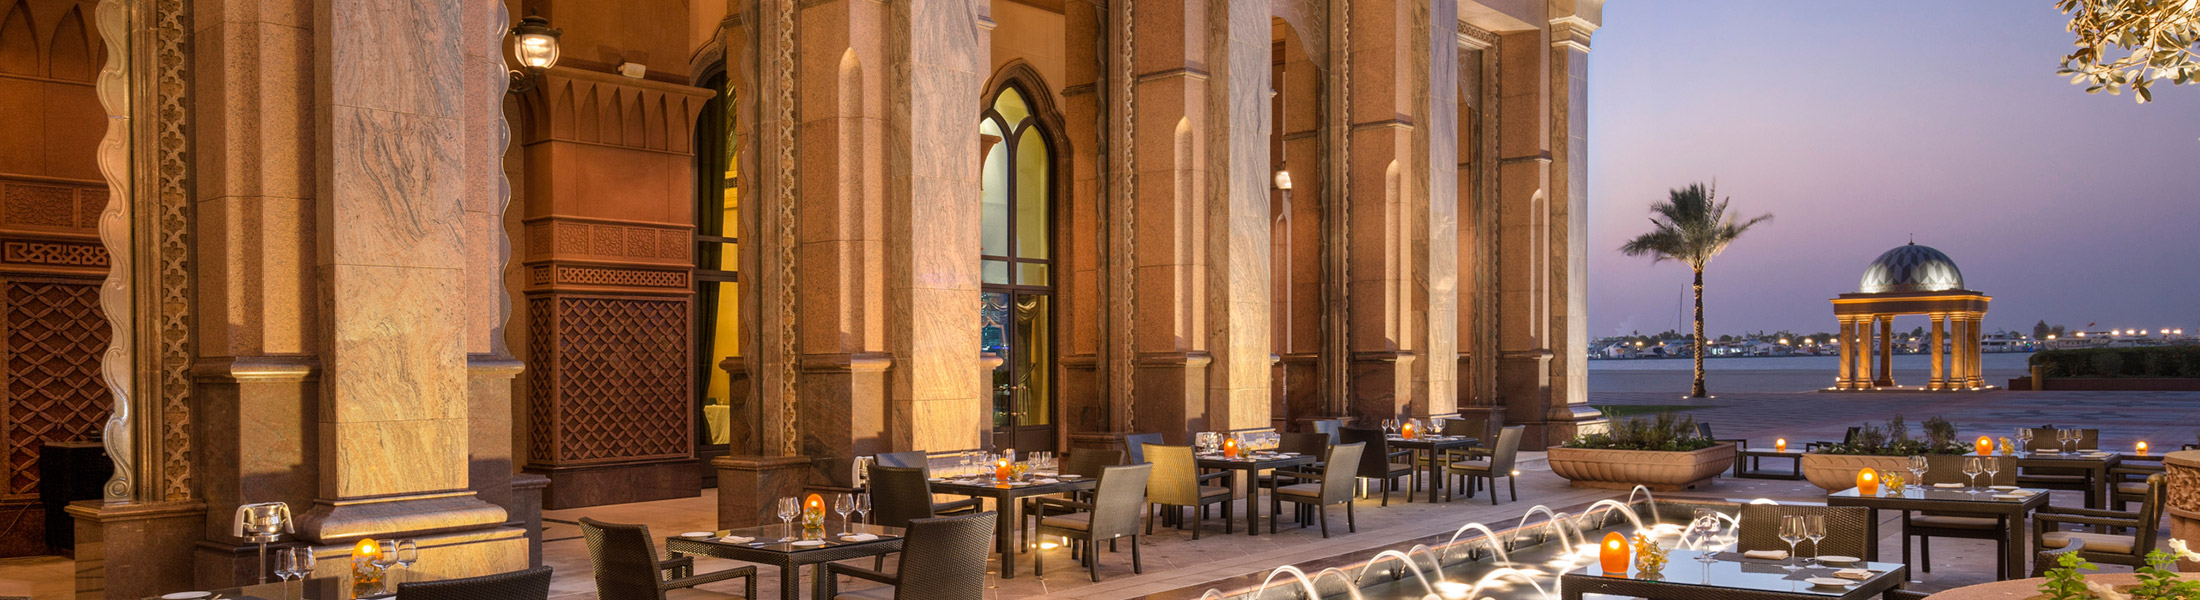 Outdoor dining terrace at Emirates Palace